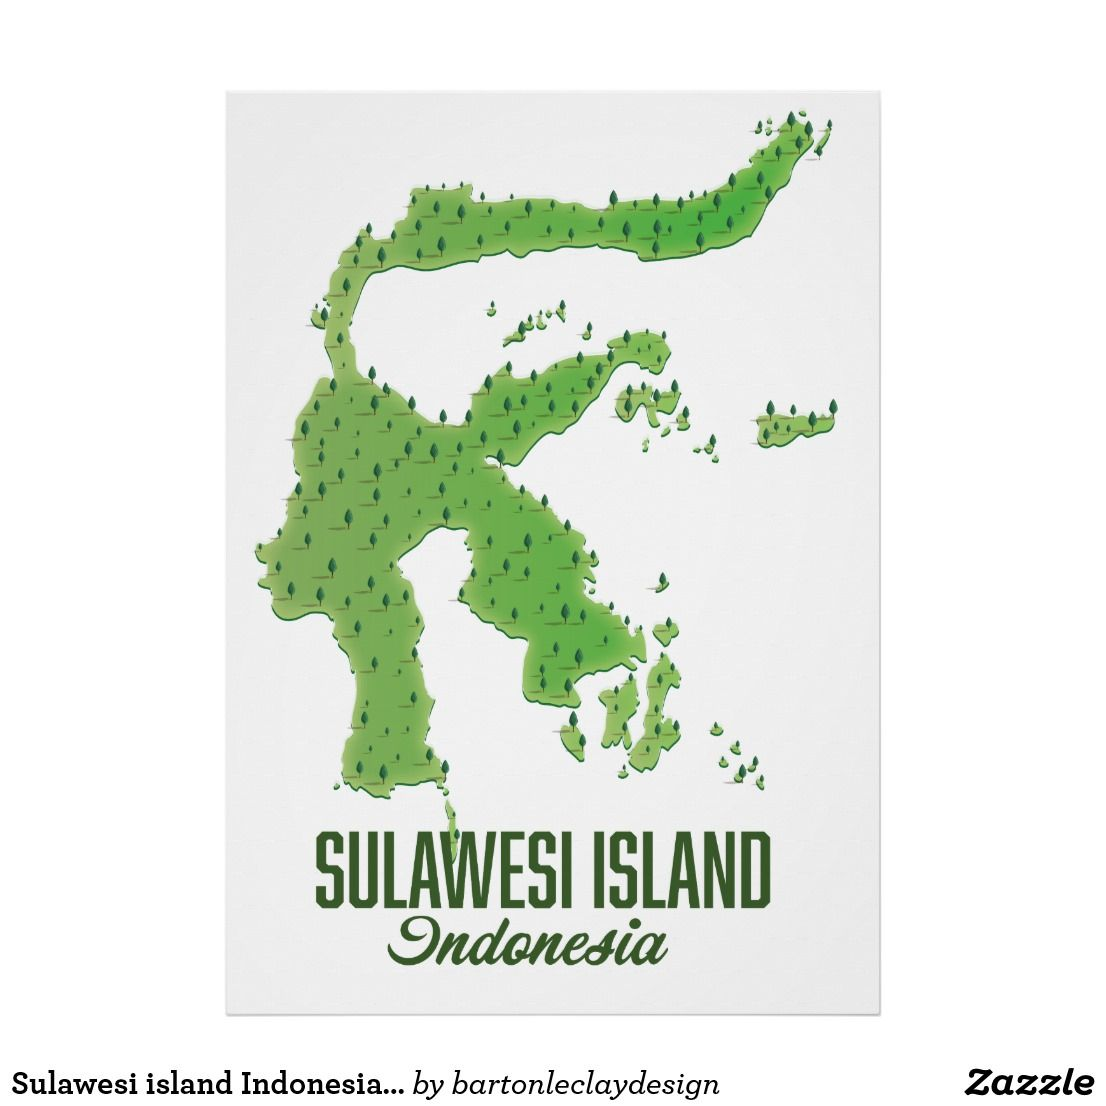 Sulawesi island Indonesia map Poster   Zazzle.com   Vintage travel posters, White elephant gifts ...